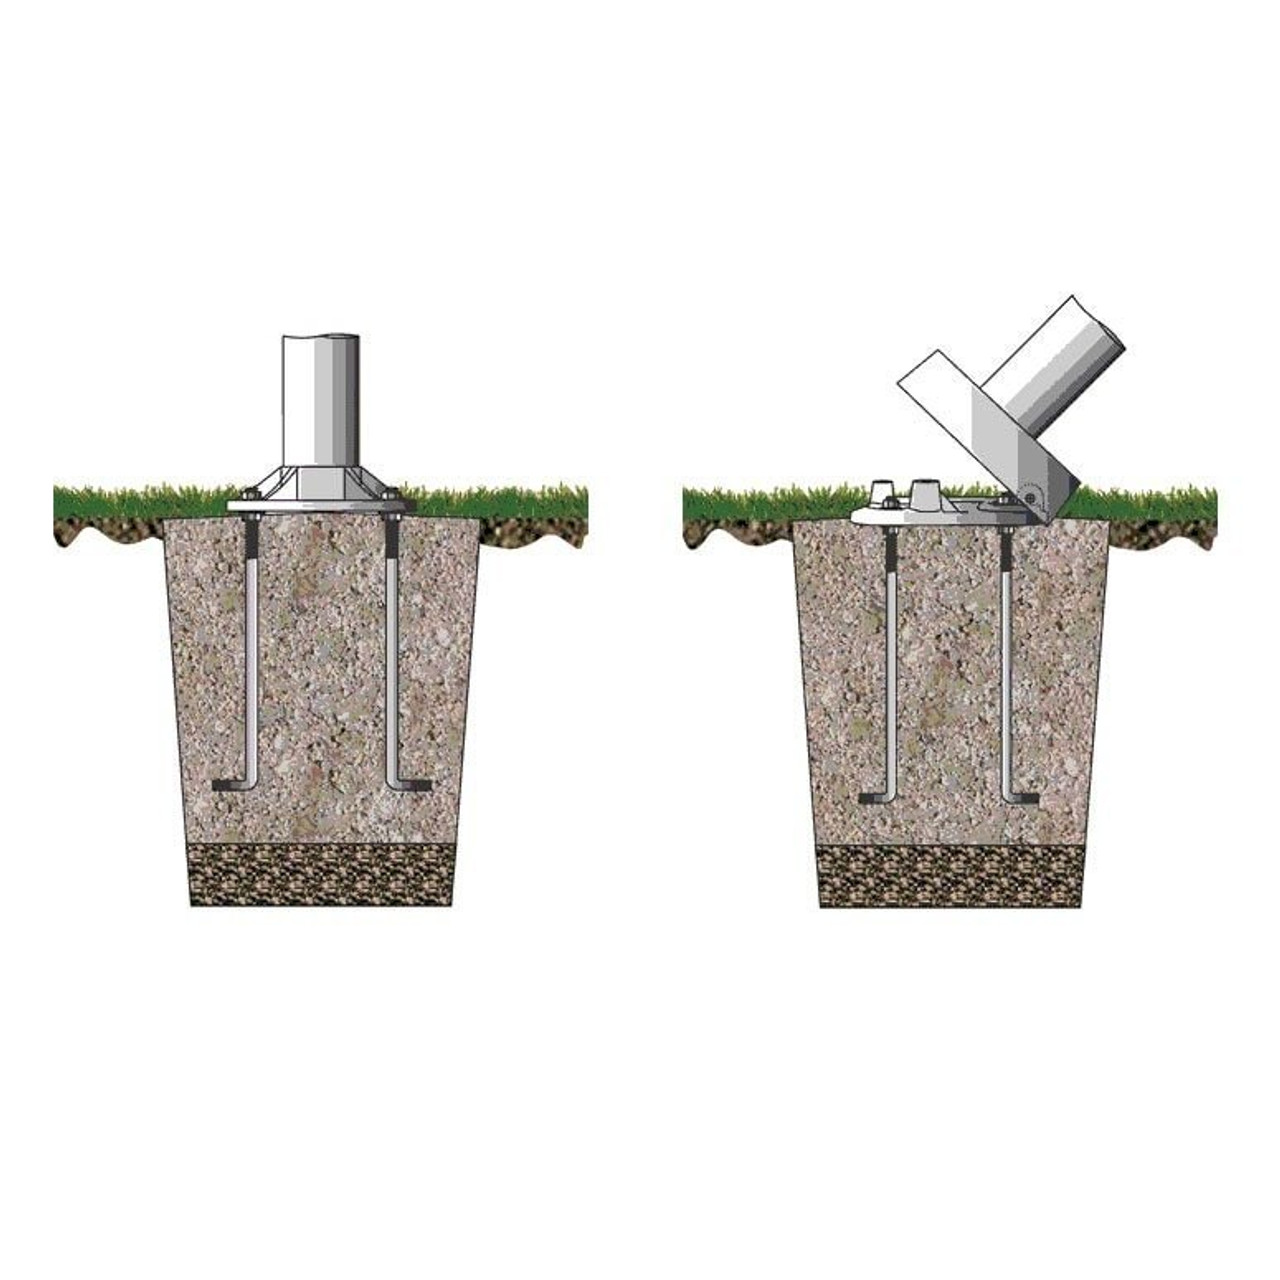 The image show an illustration of a tilted and a stationary shoe bases above and below the surface. Stationary shoe base is displayed on the left white, gray, and dark gray to show the effects of the aluminum above the surface, green grass is visble as well. Below the surface two hinges in concrete are shown. The tilted shoe base is displayed on the right side with grass visible above the surface. White, gray, and dark gray are used to show the effects of aluminum. Below the surface two hinges in concrete are shown.